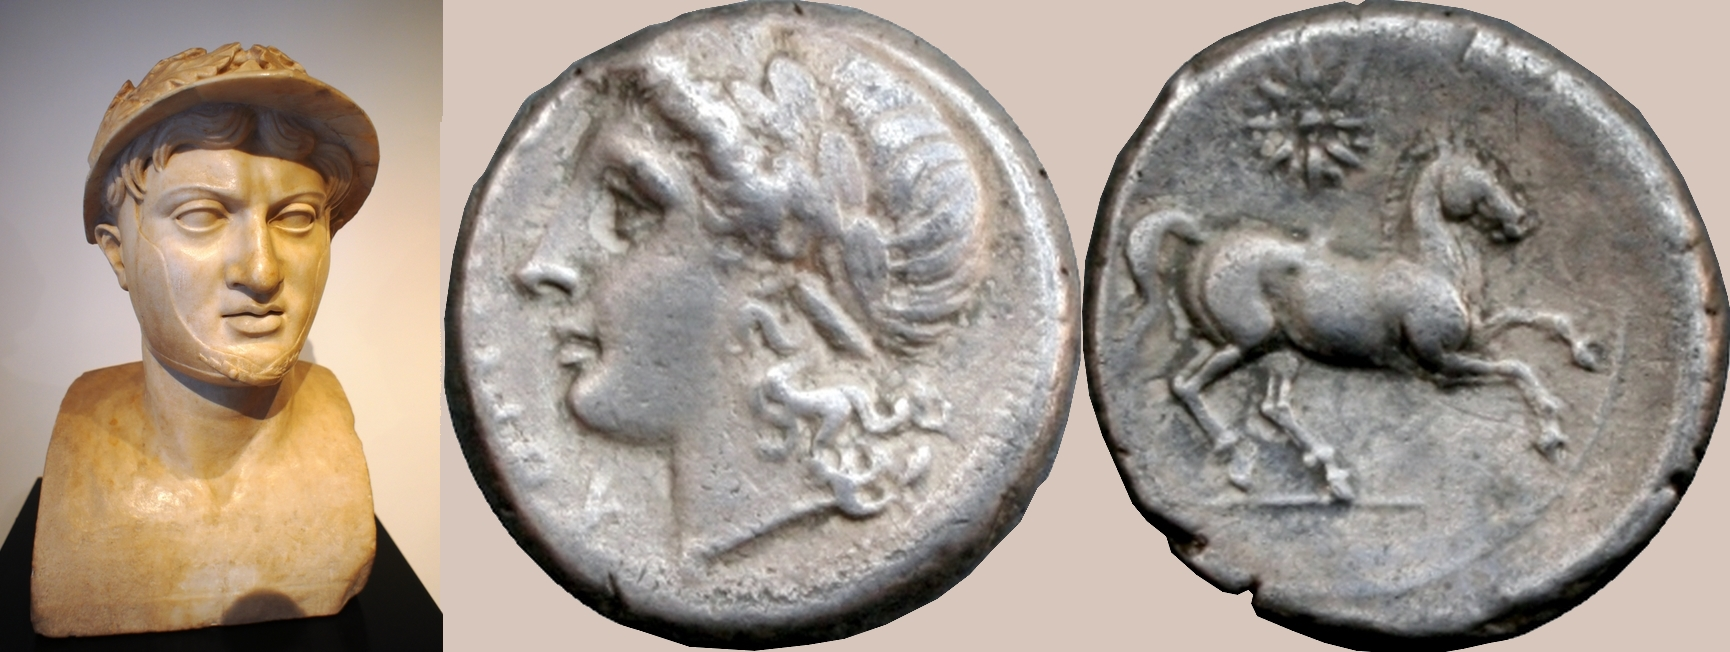 15/1 coin of Consuls Publius Decimus Mus and Publius Valerius Laevinus, with bust of Pyrrhus, winner of Pyrrhic victories at Heraclea 280BC and Asculum 279BC